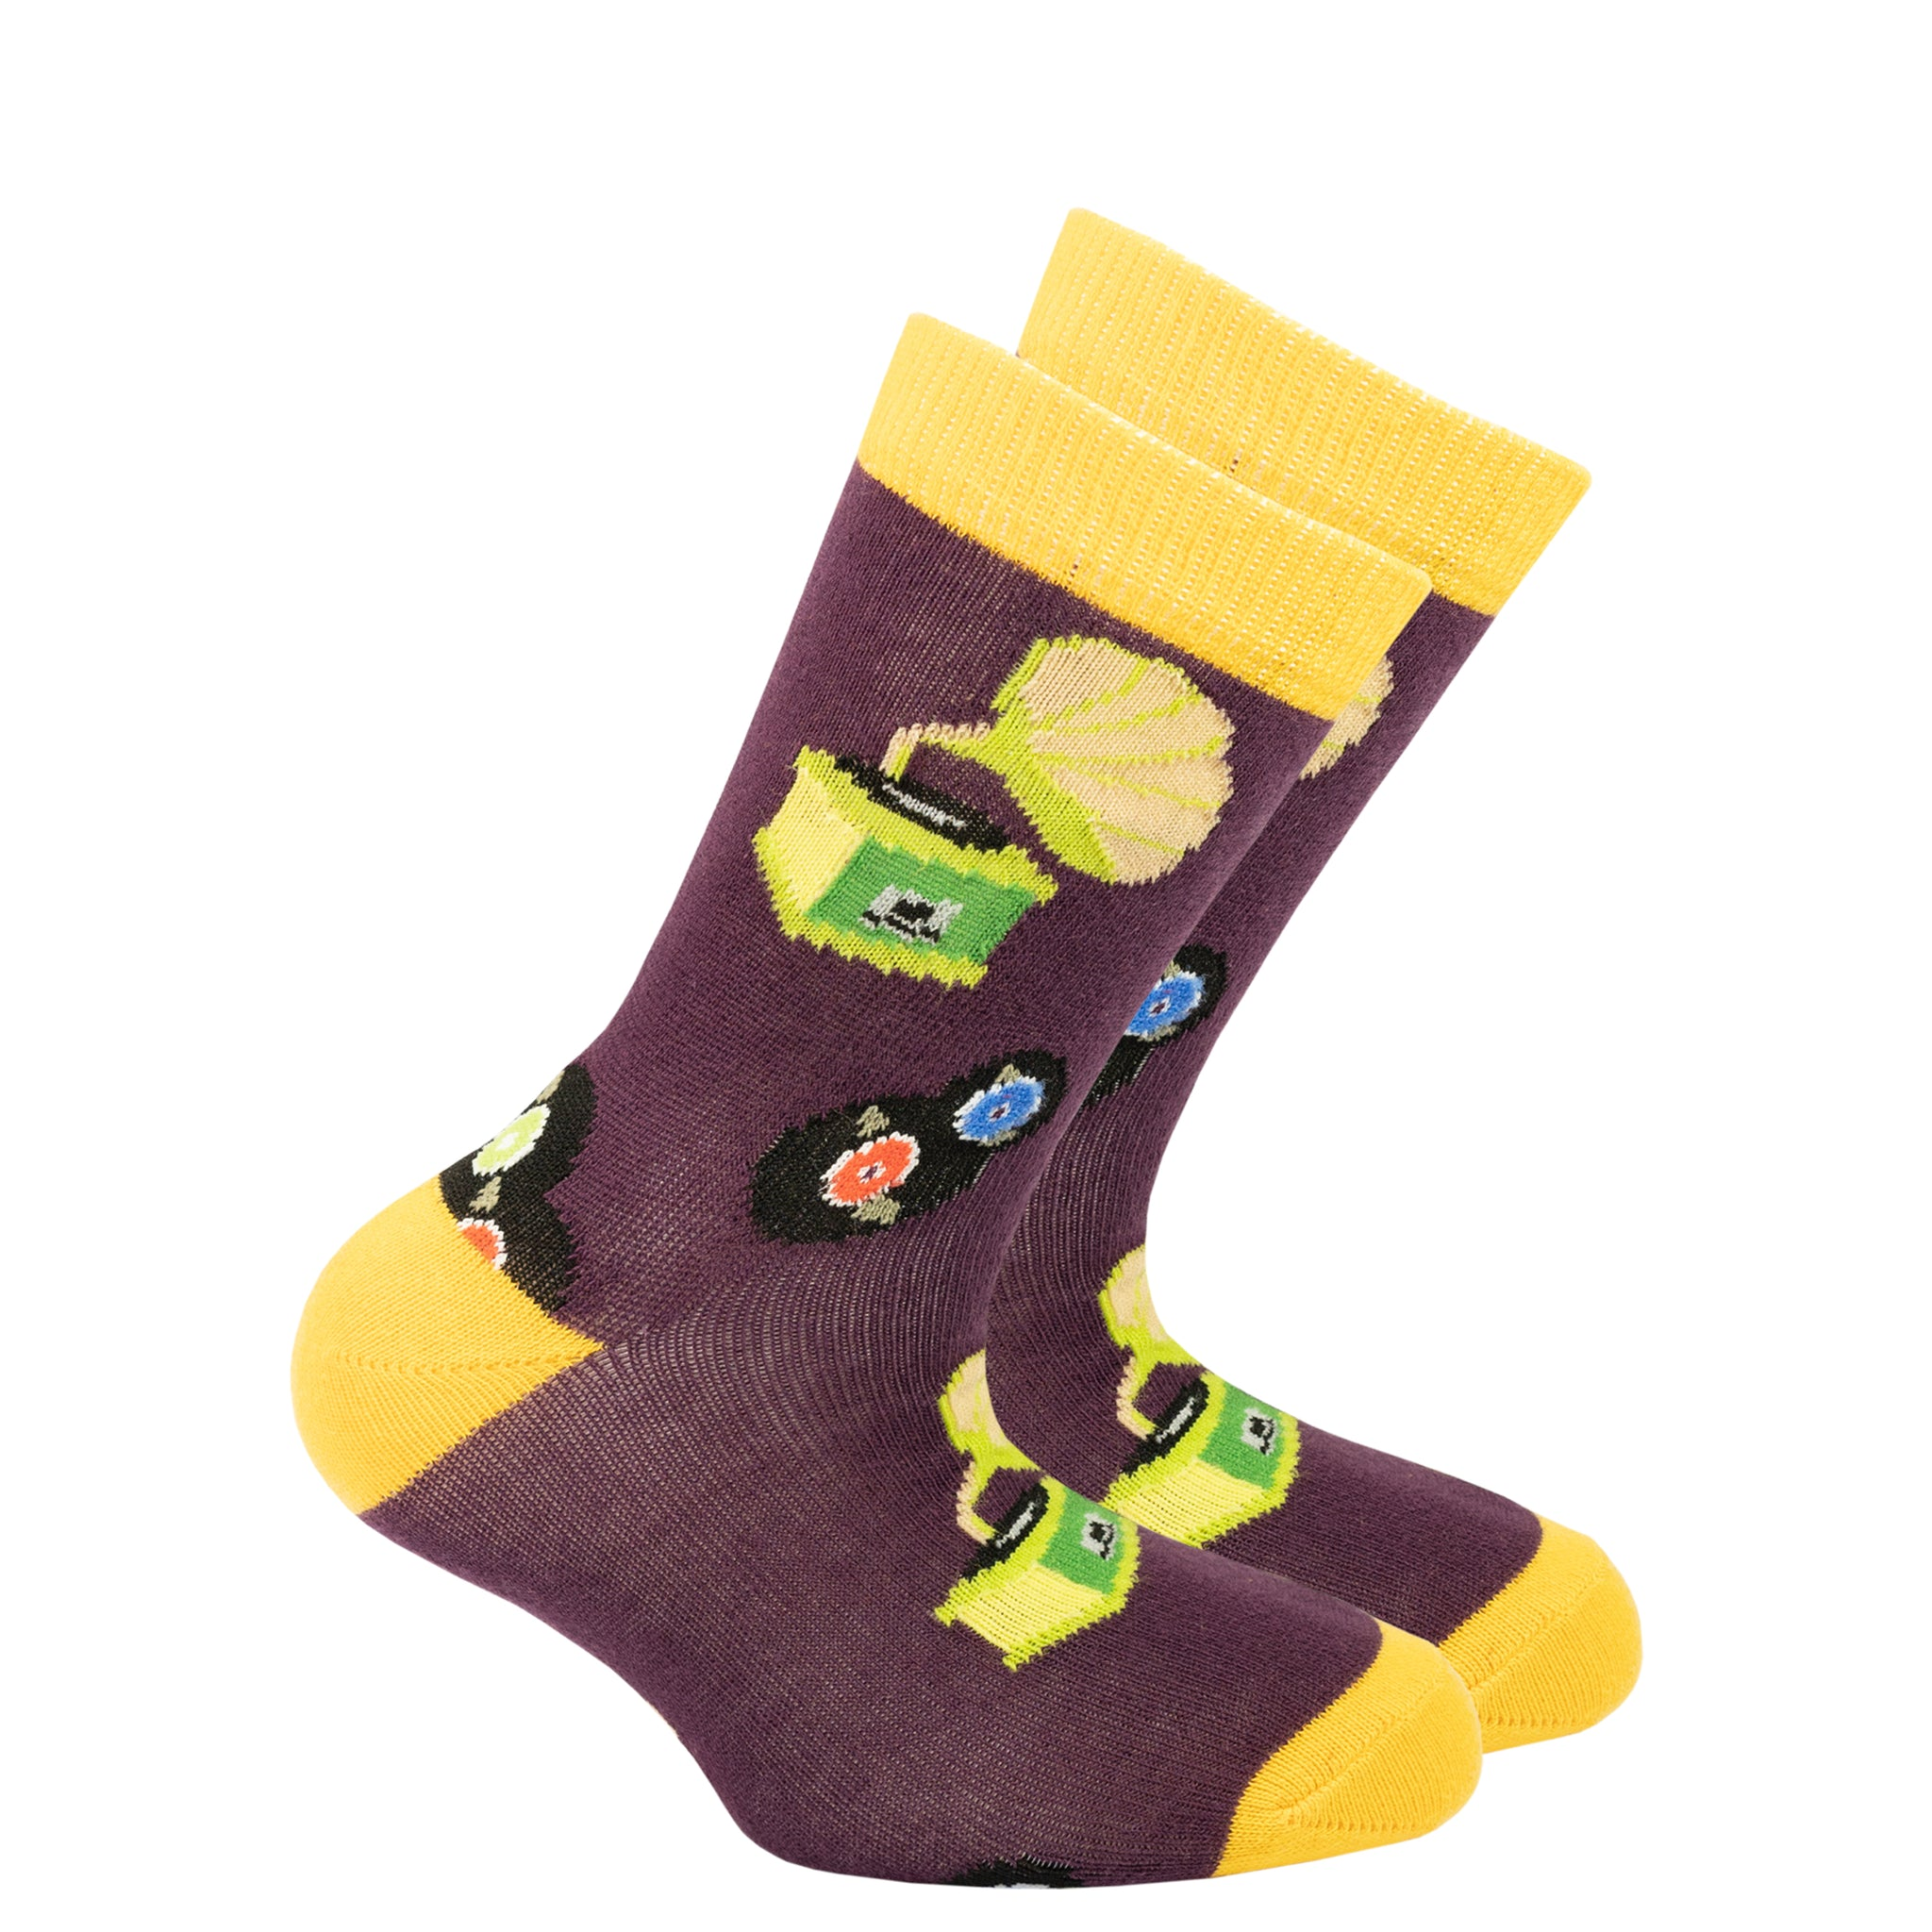 Kids Gramophone Socks yellow